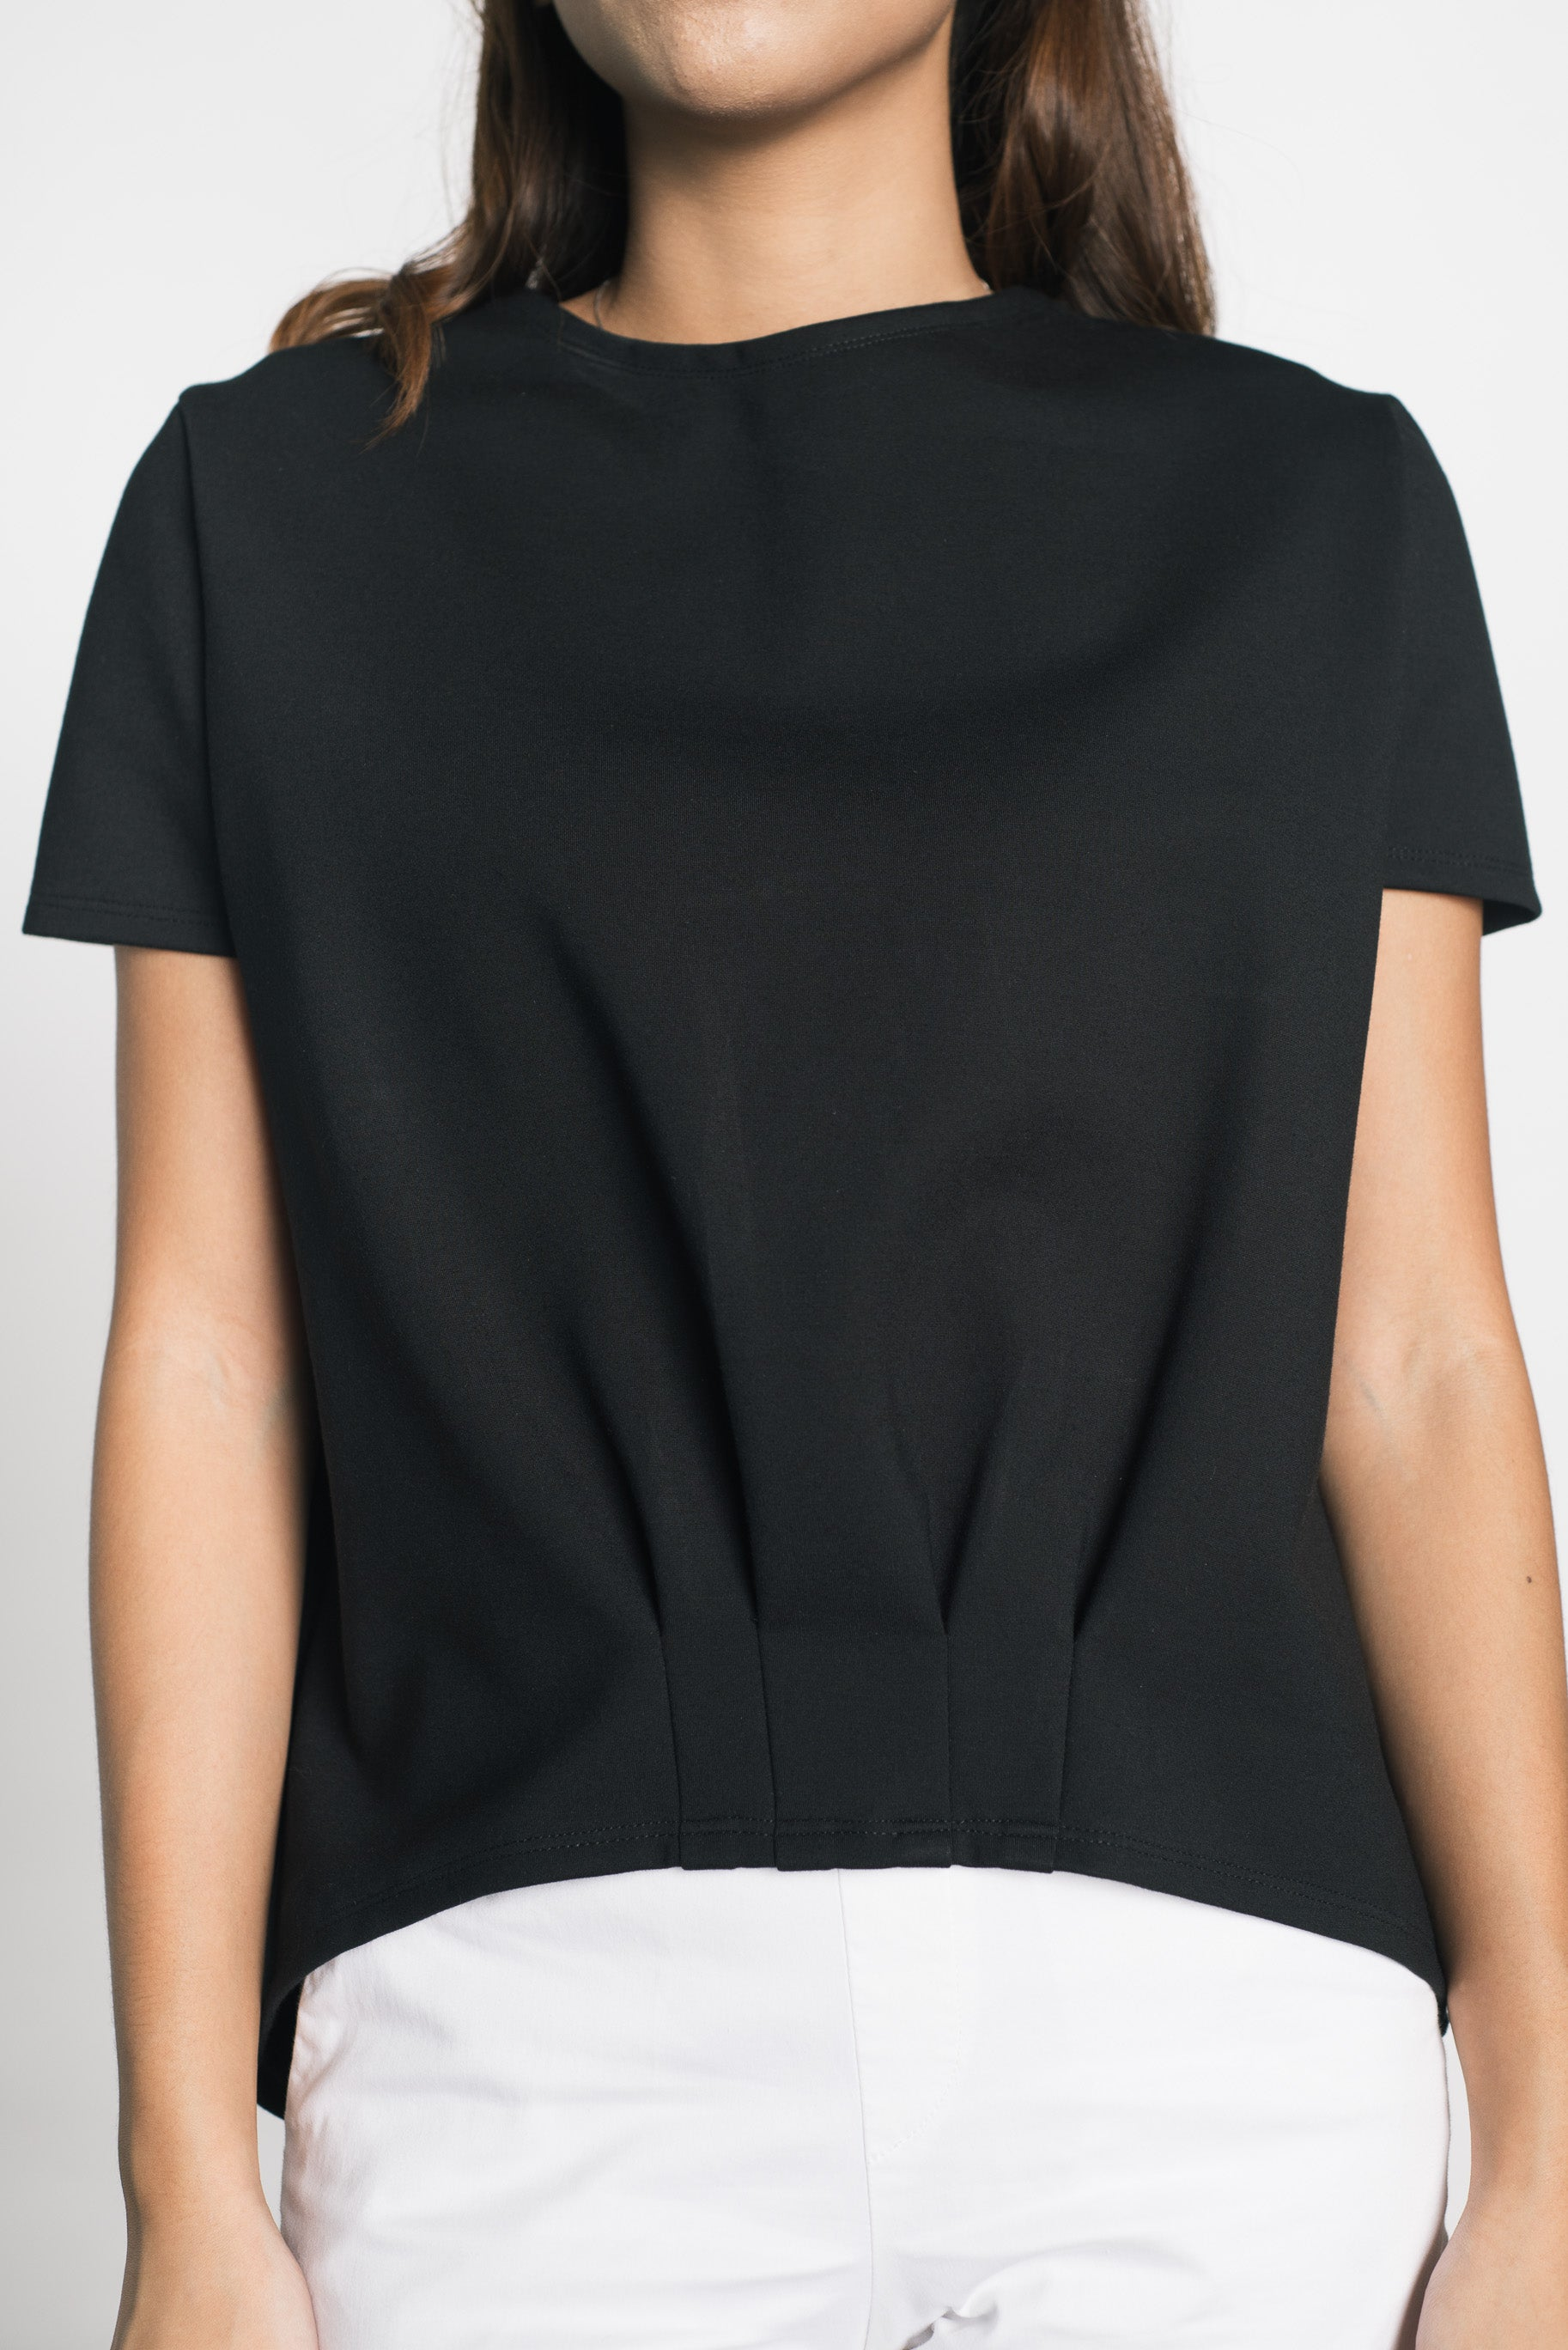 Doroteia Top in Black